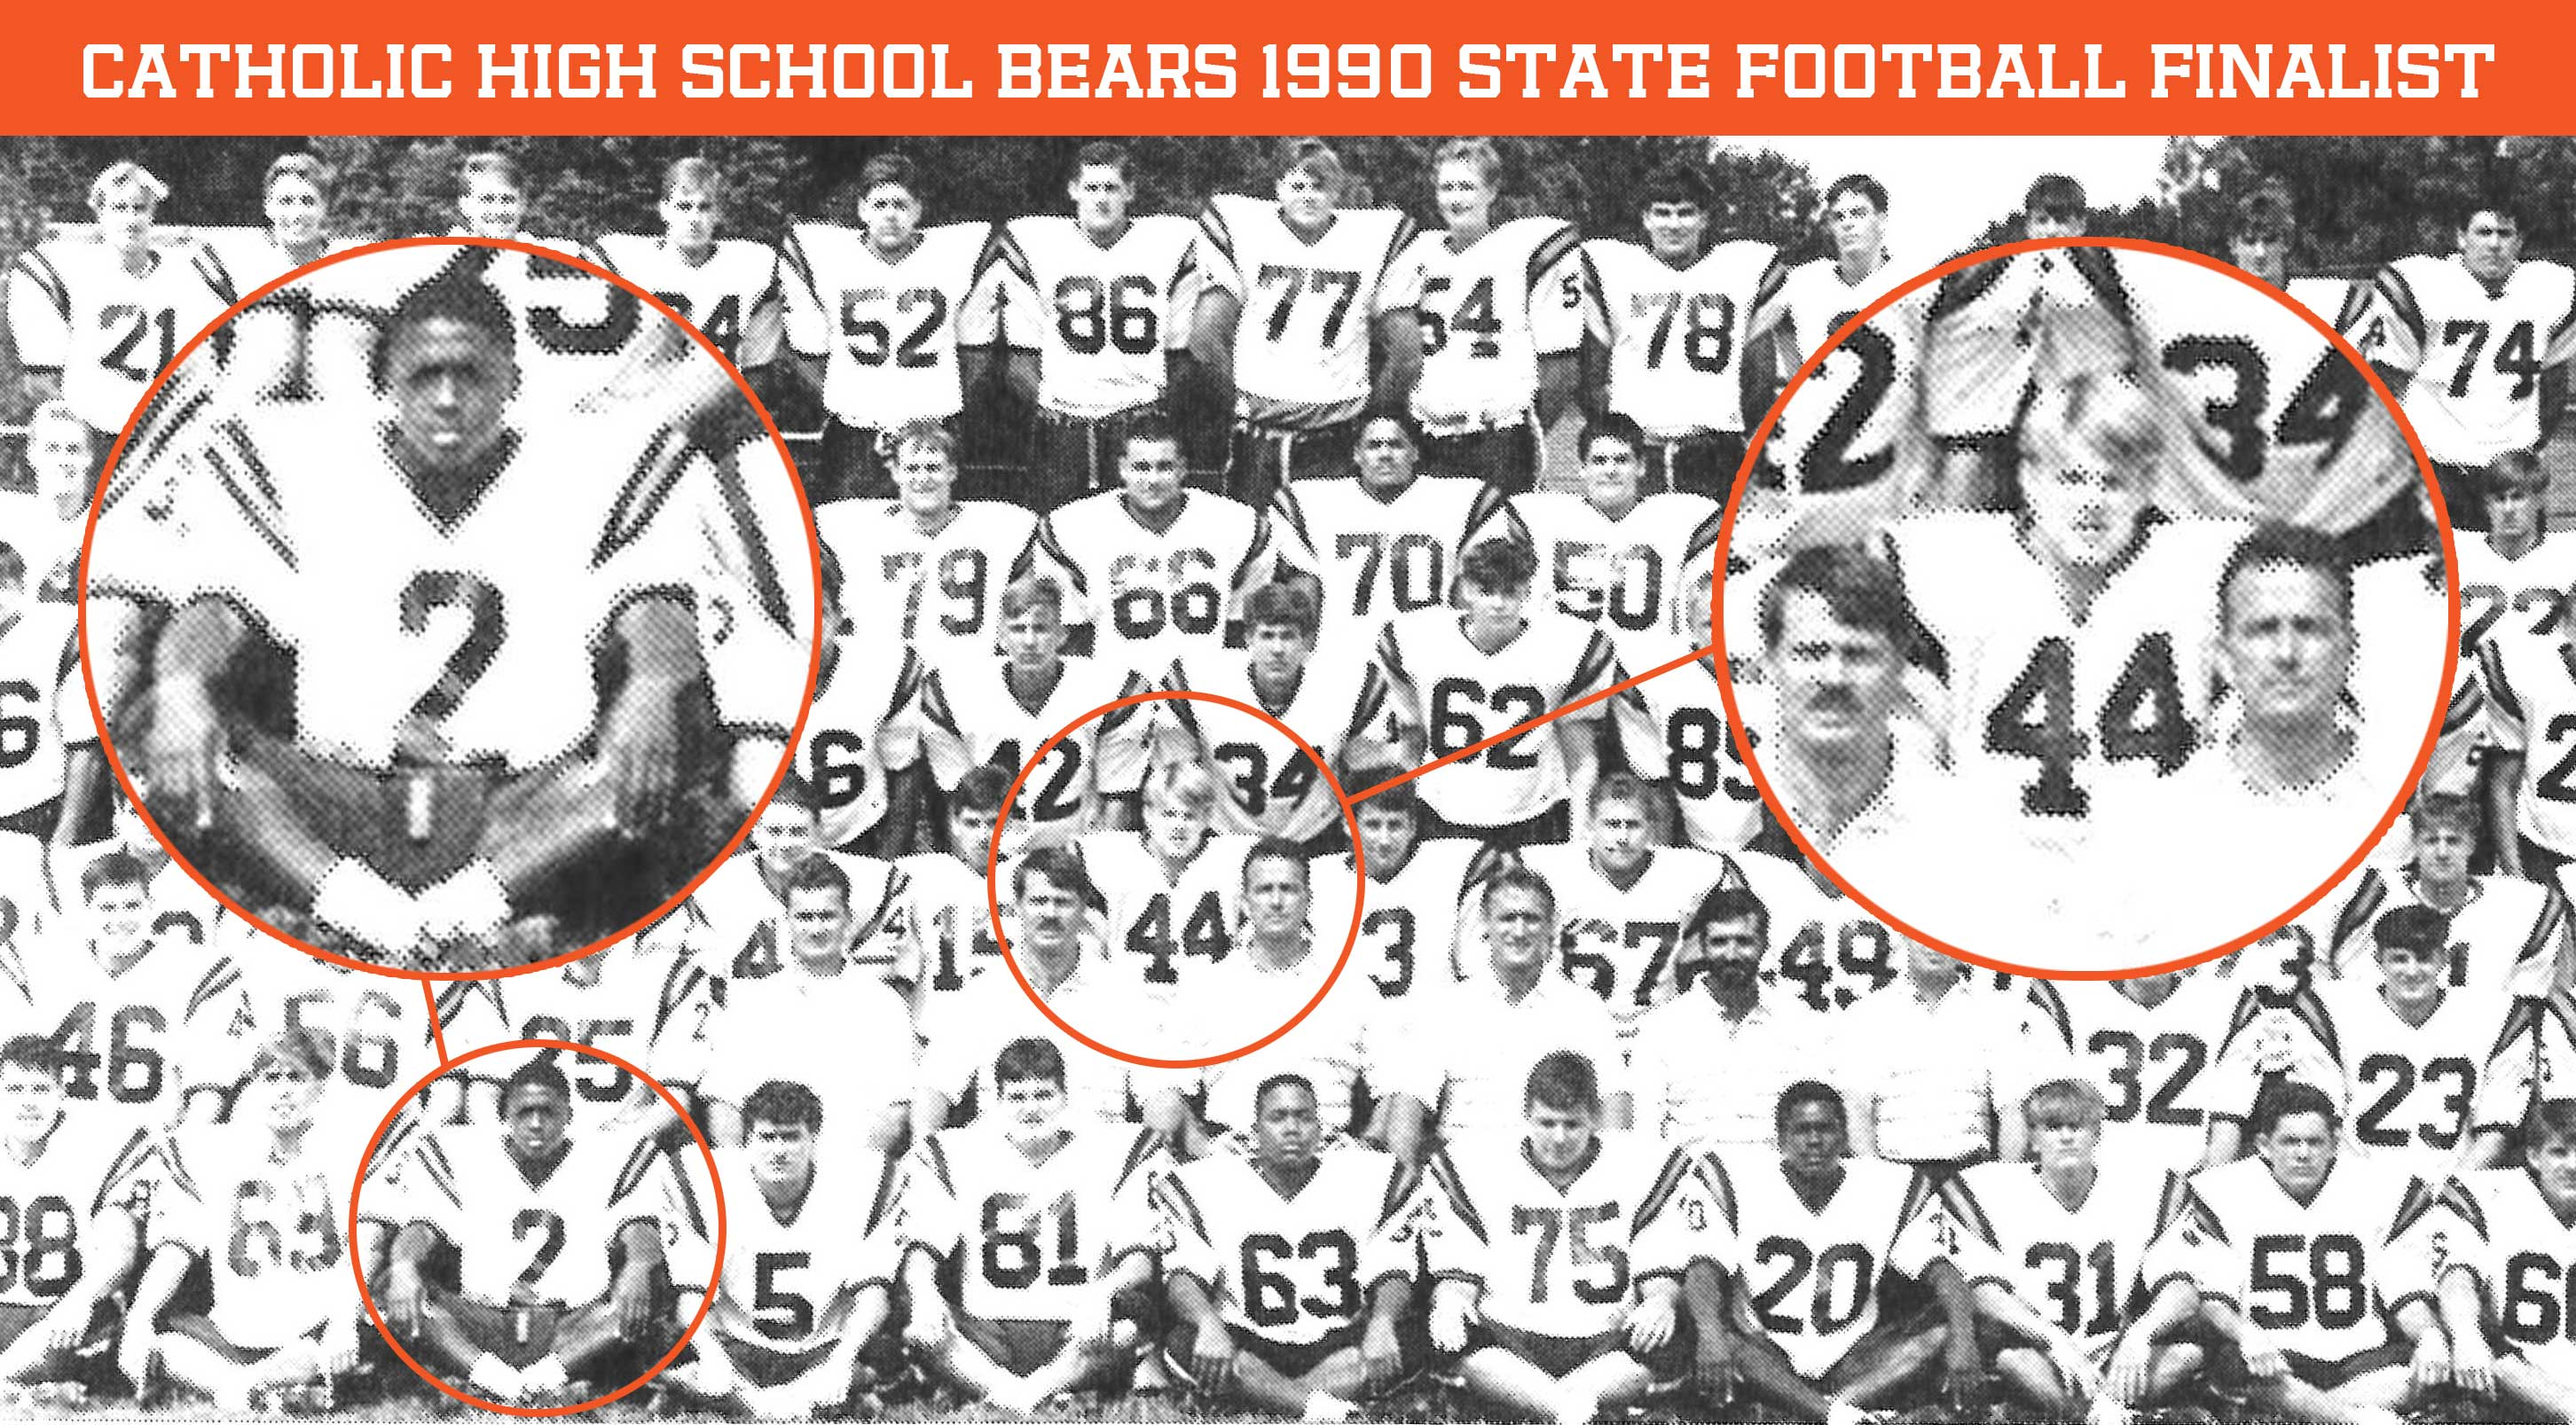 Catholic High School 1990 State Football Finalist - Ryan Jumonville (#44) and Warrick Dunn (#2)